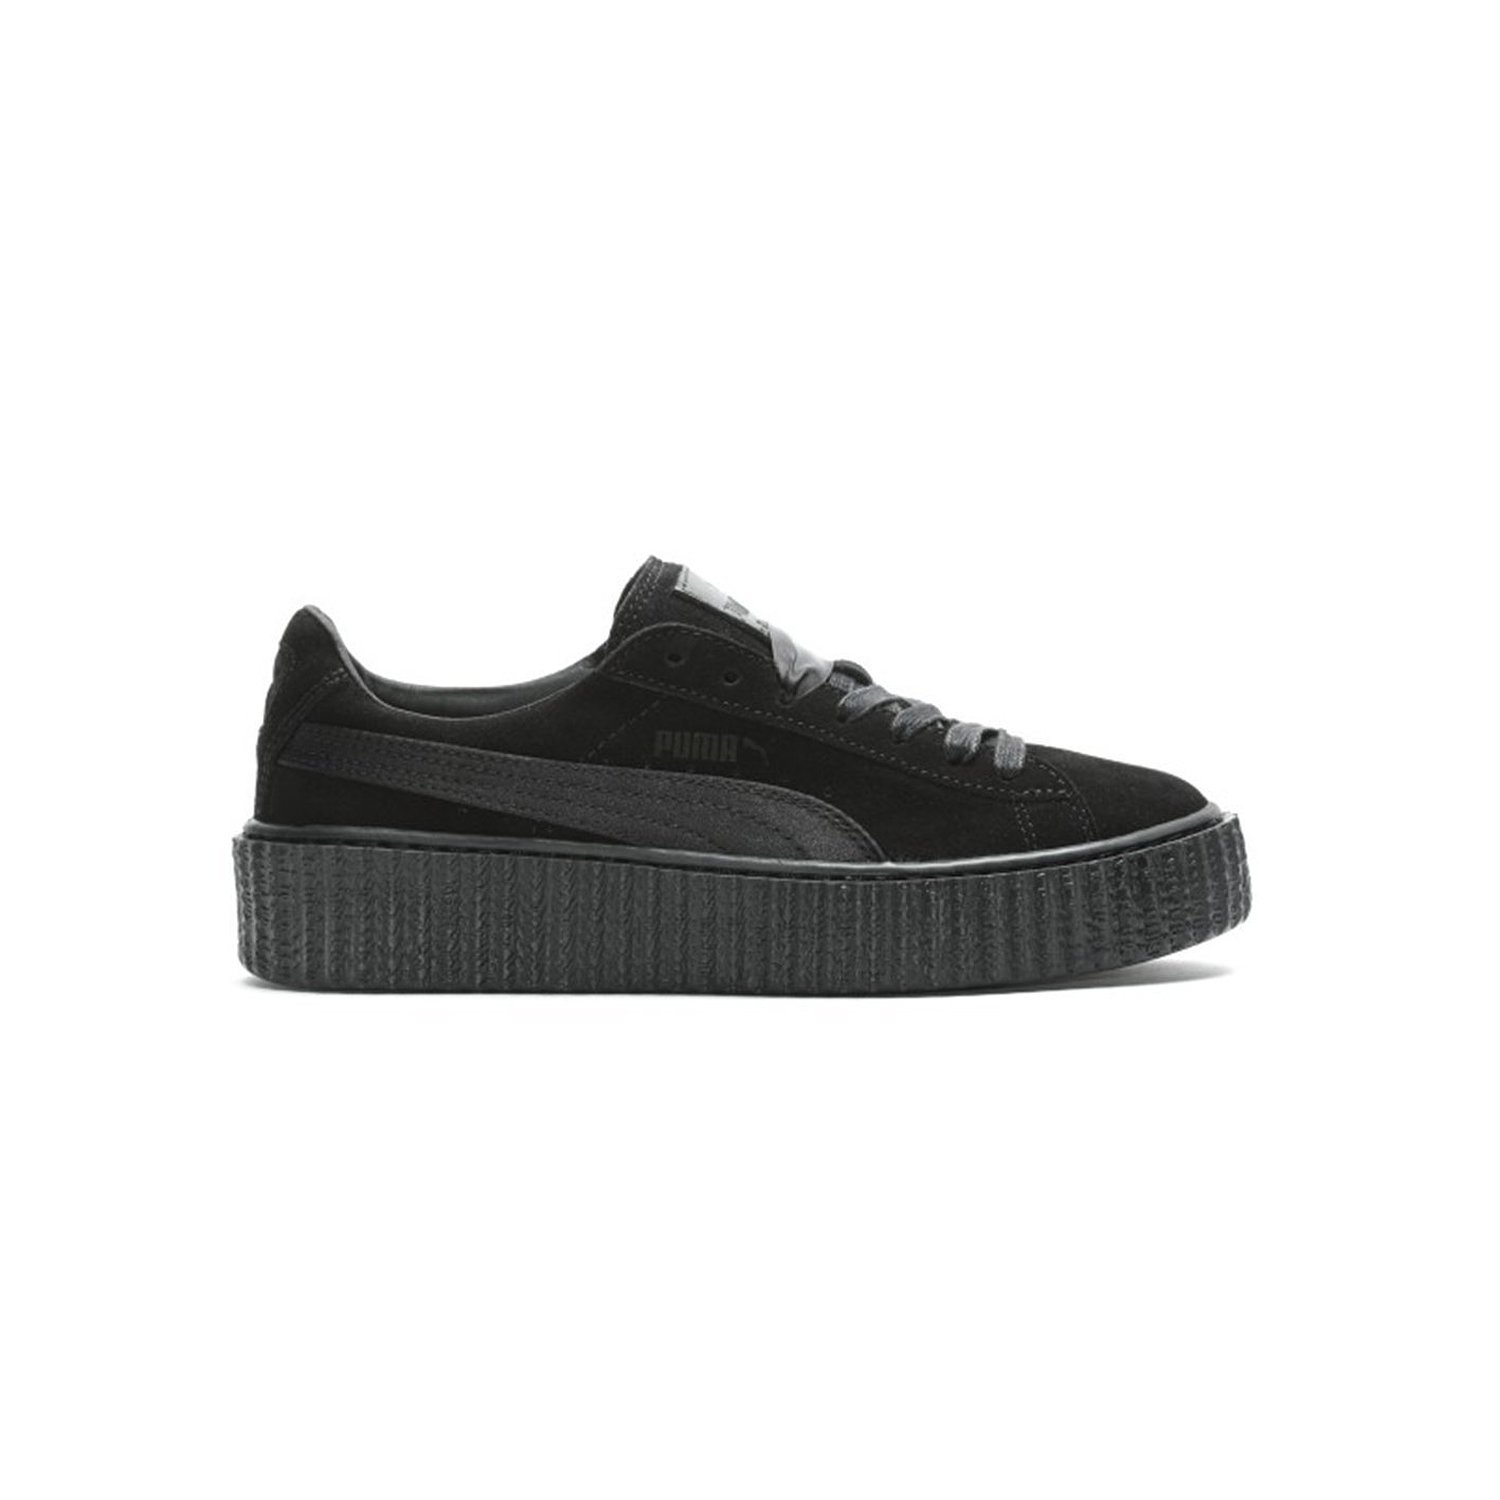 Puma Rihanna Creepers Amazon